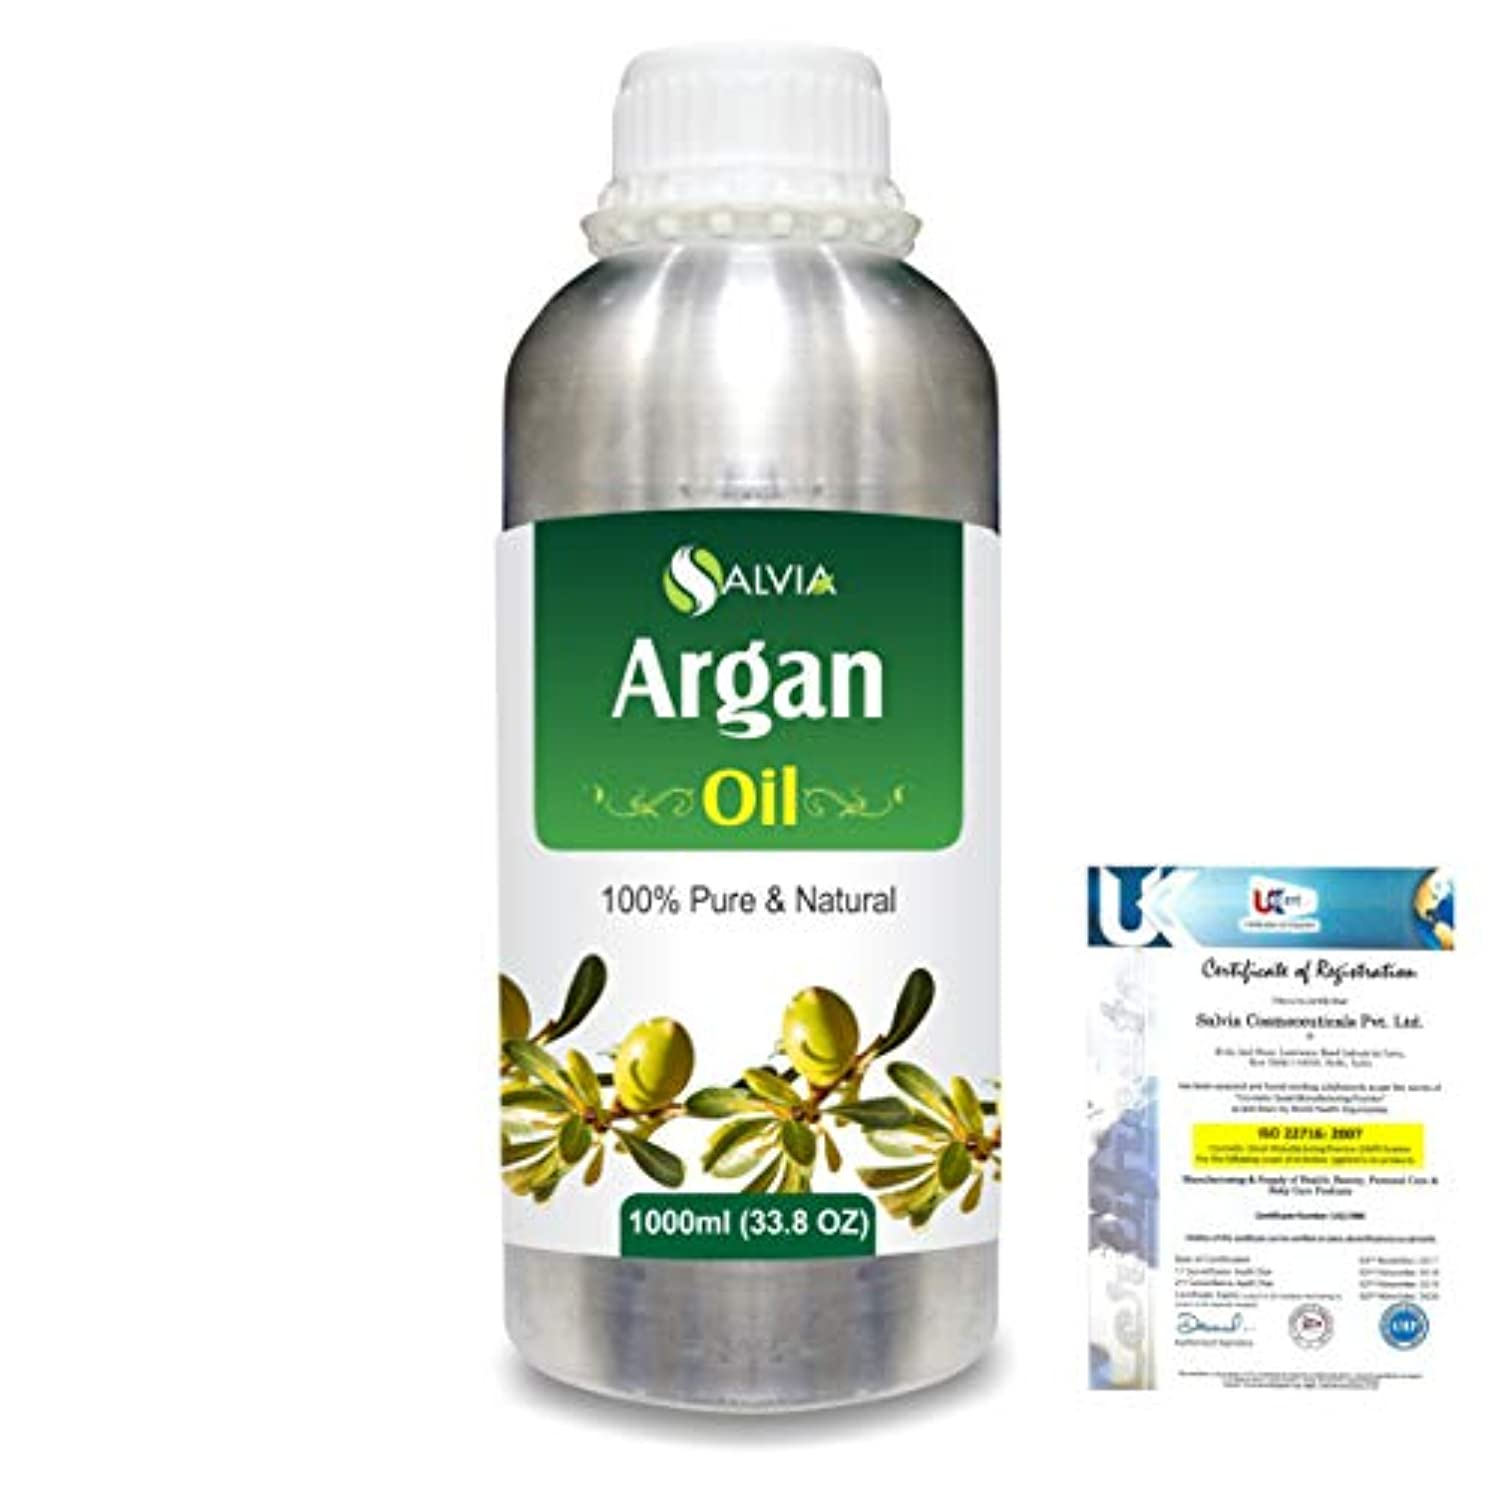 偉業メアリアンジョーンズ偶然Argan (Argania spinosa) 100% Natural Pure Essential Oil 1000ml/33.8fl.oz.